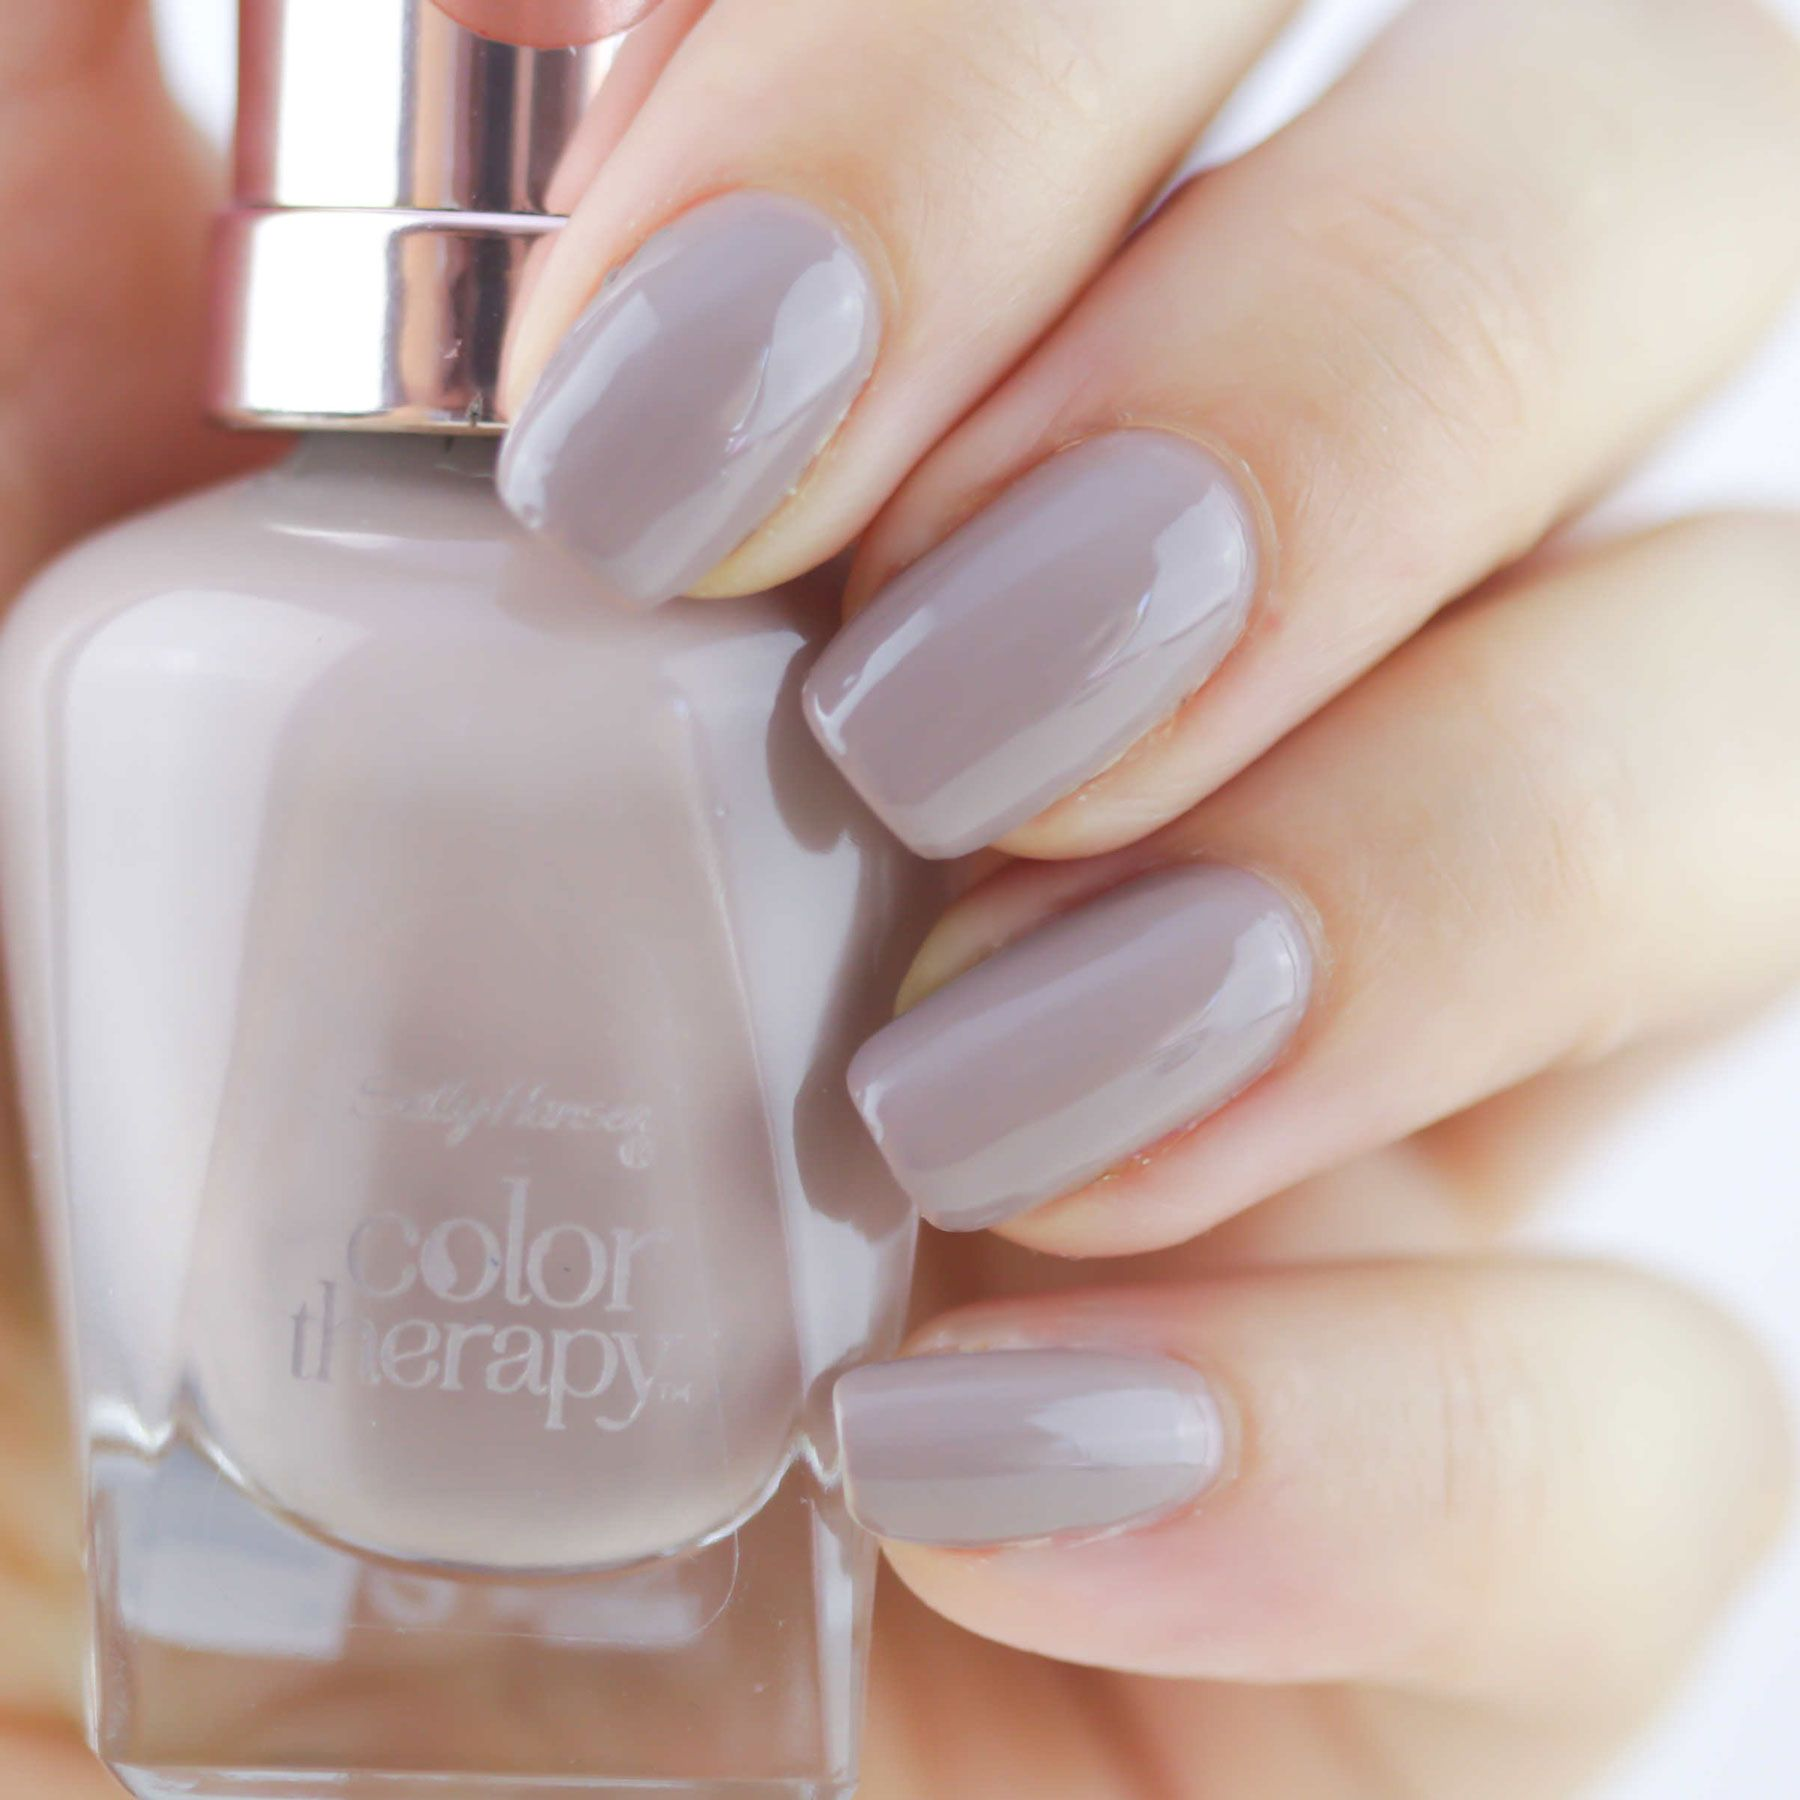 Steely-Serene-Swatch-Sally-Hansen-Color-Therapy-web | Nails ...